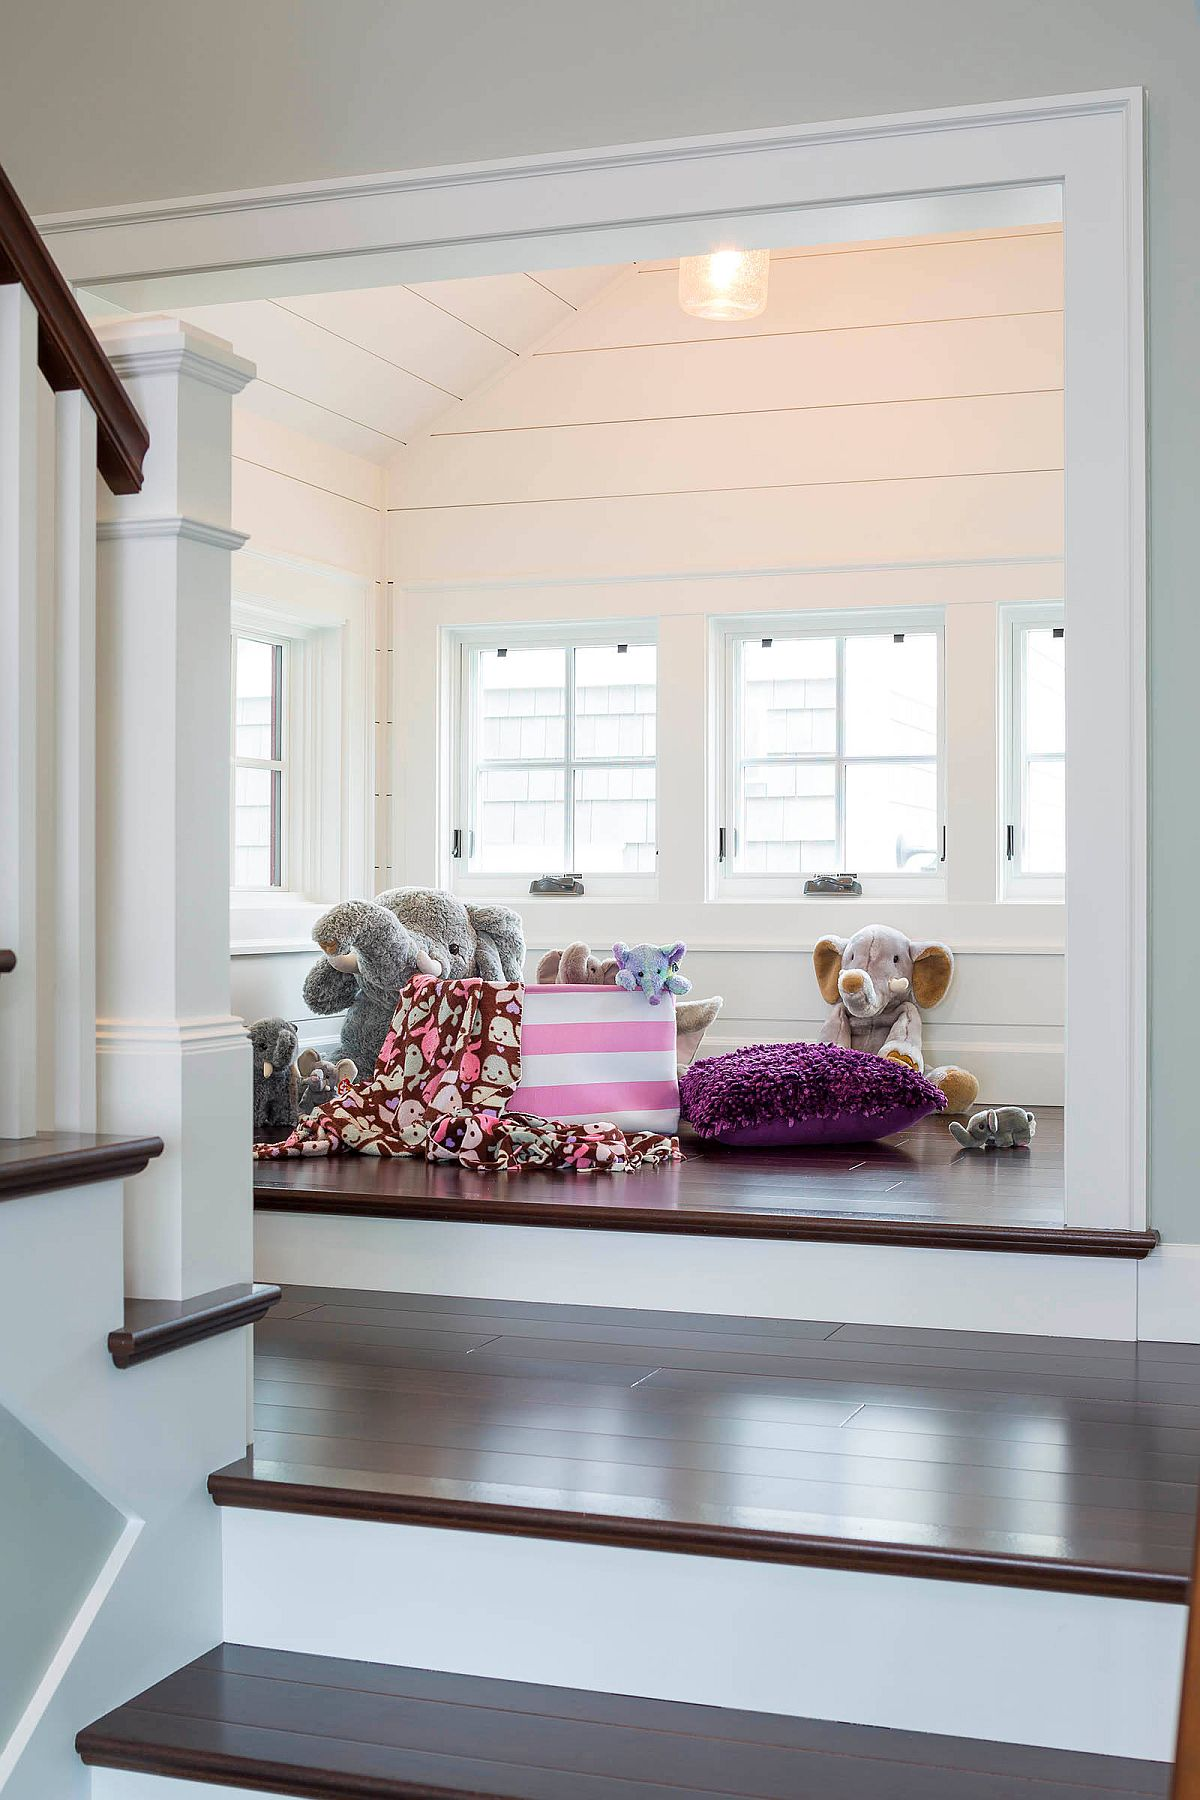 Soft-toys-and-floor-cushions-are-all-you-need-to-turn-that-empty-area-into-a-playroom-70836